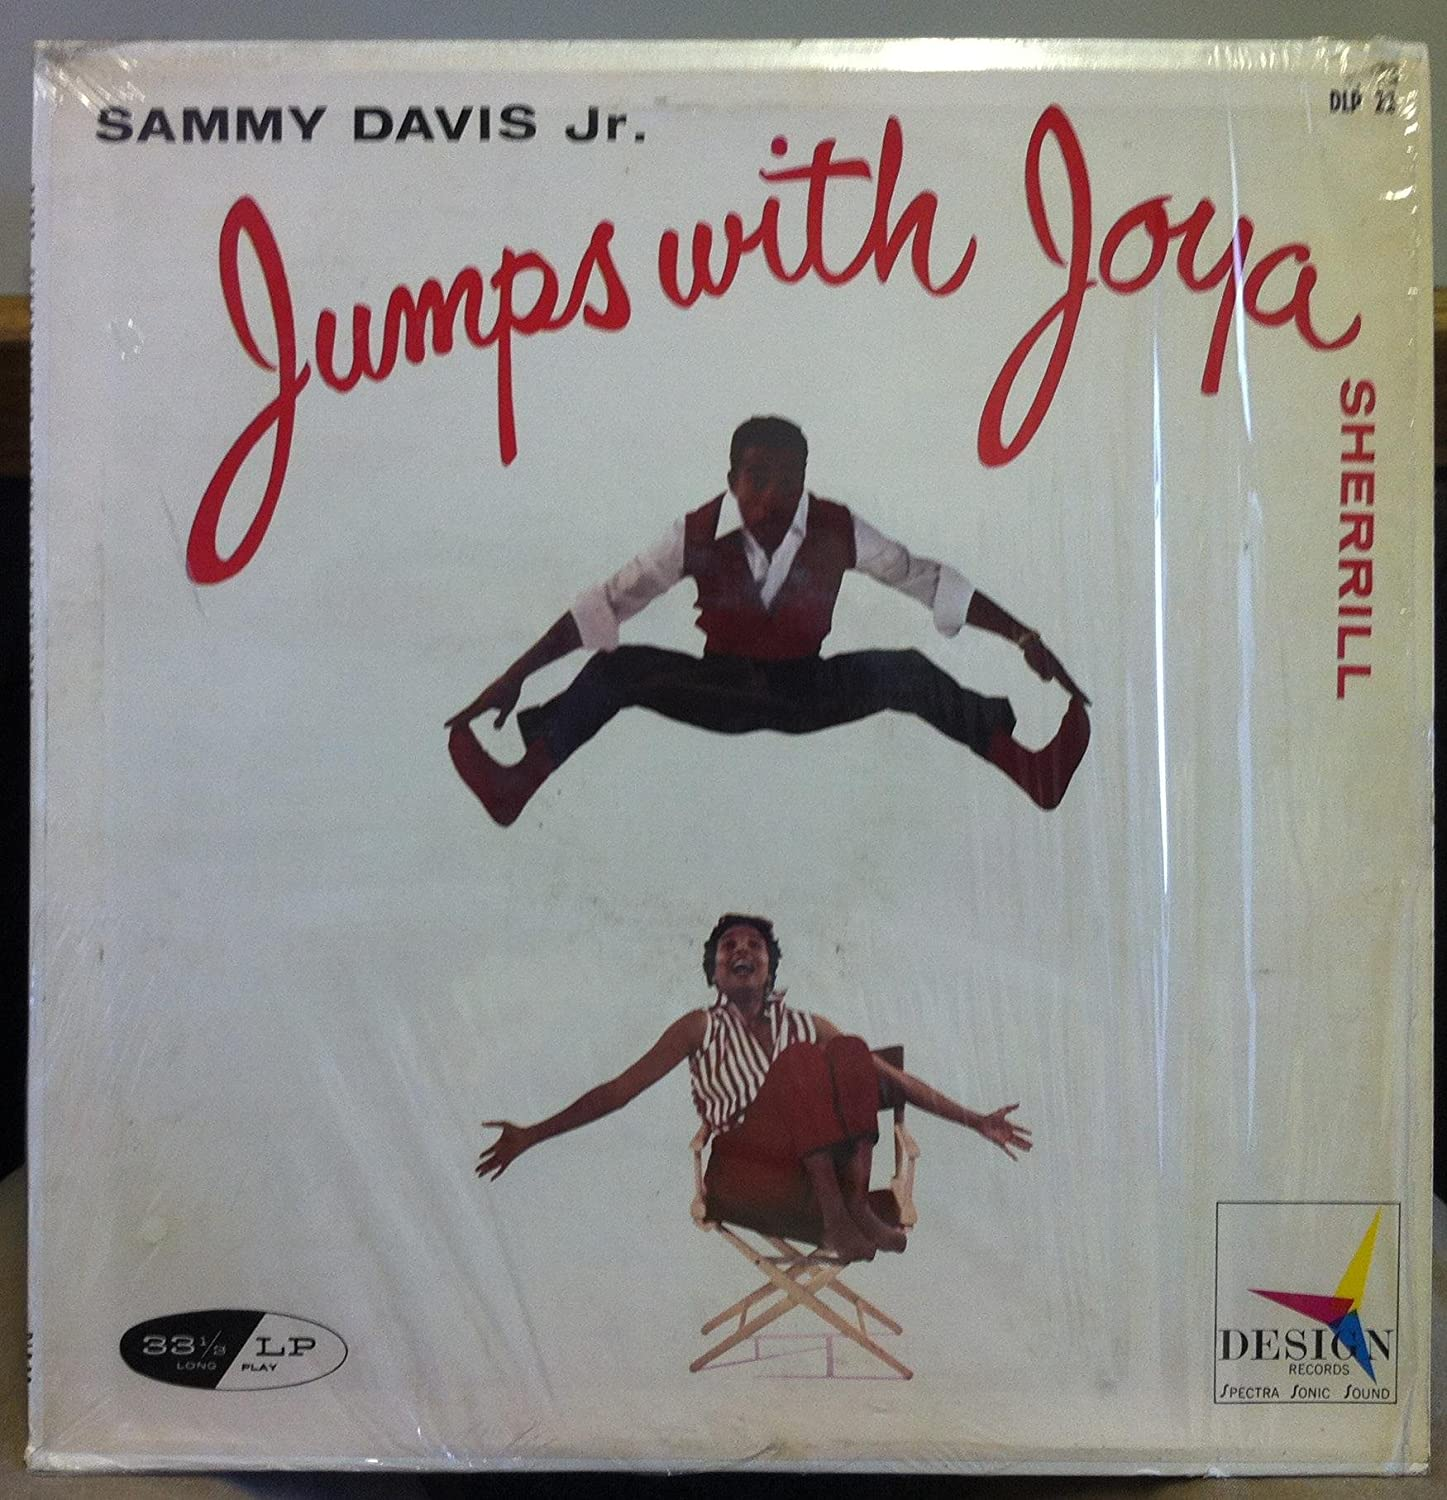 Sammy Davis Jr & Joya Sherrill JUMPS WITH JOYA vinyl record